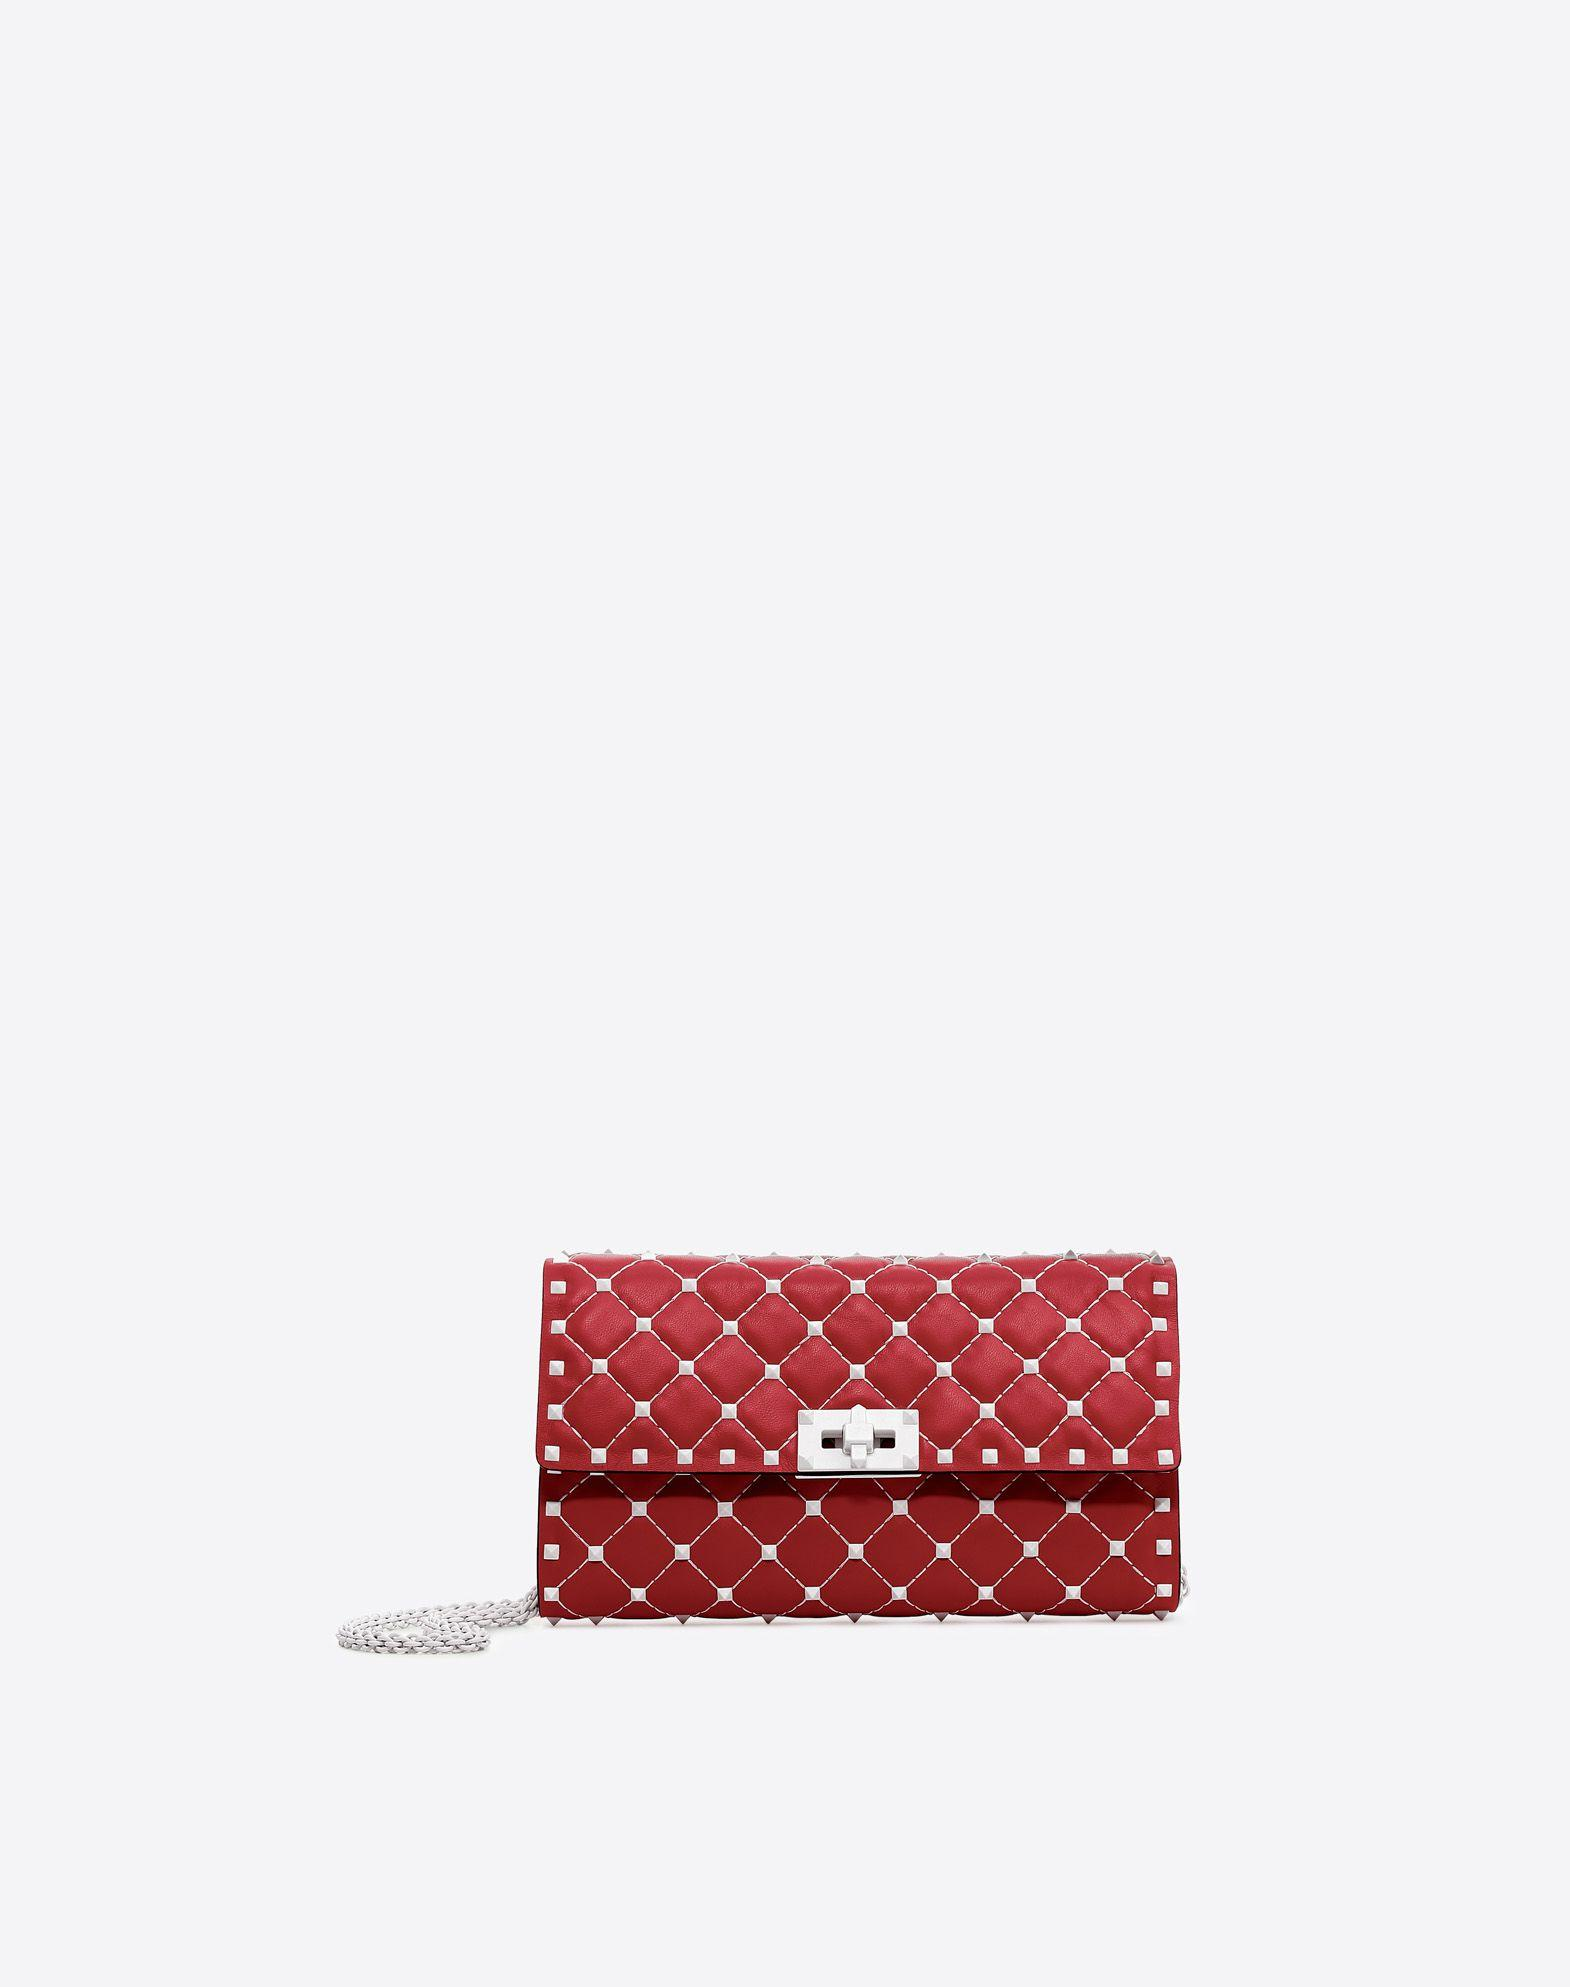 Valentino Garavani Free Rockstud Spike Chain Bag In Valentino Red